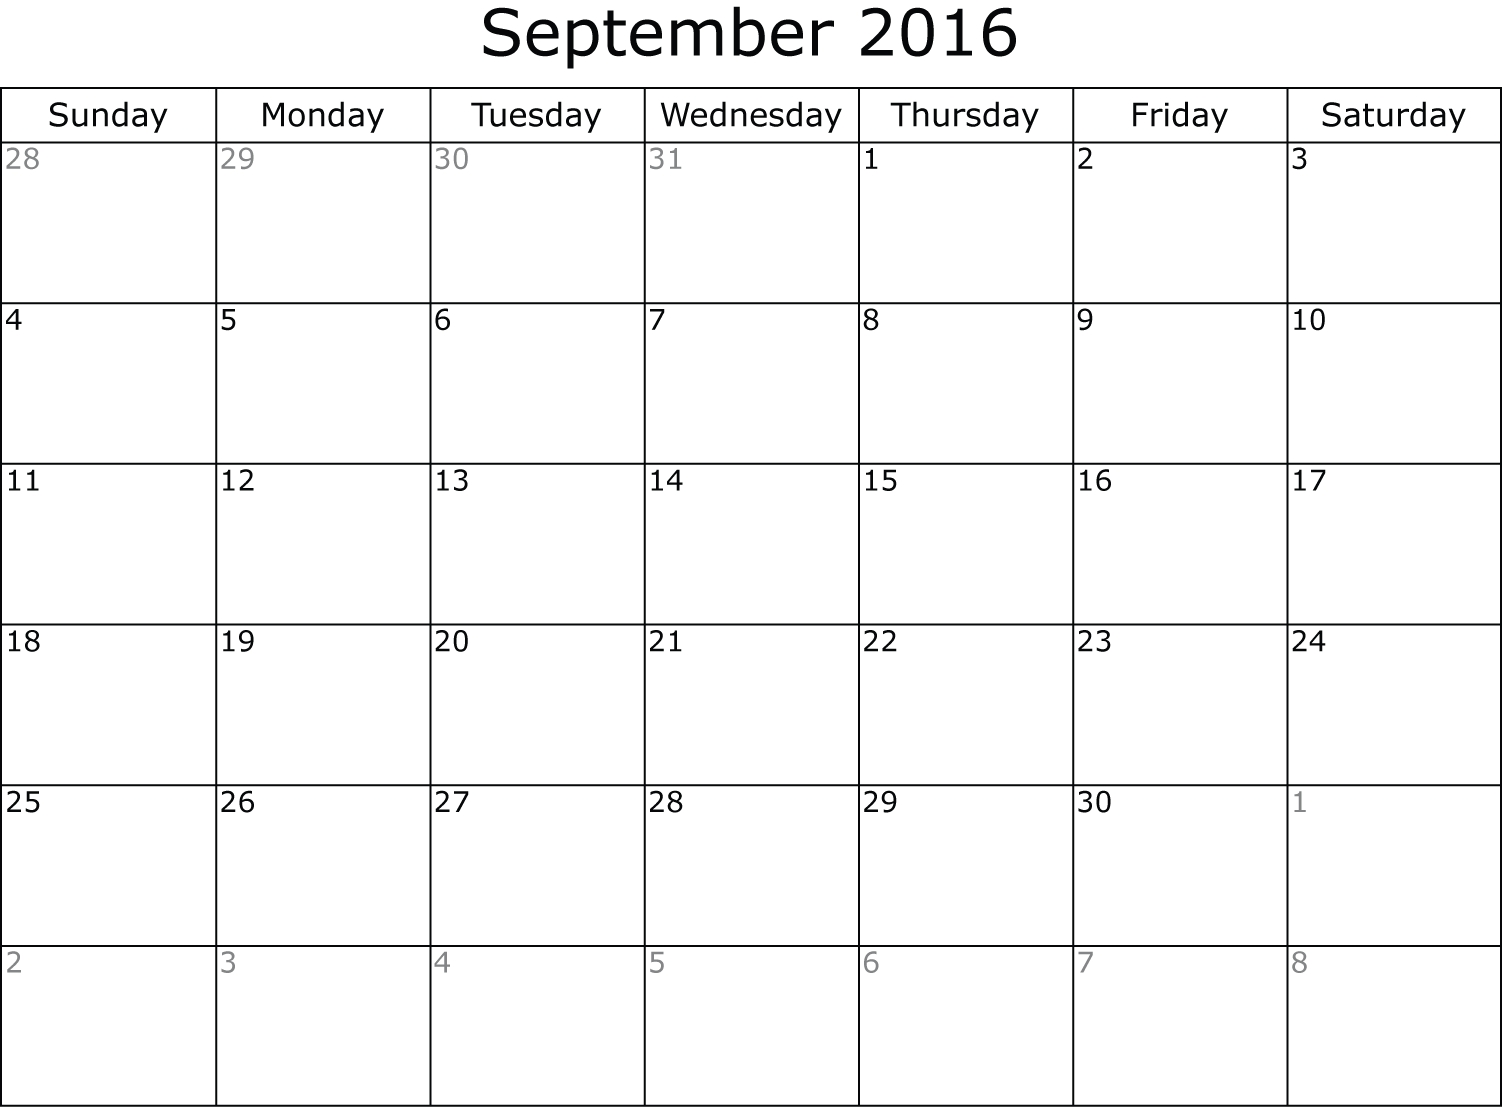 Calendar Planner September 2016 | Fotolip Rich Image And Wallpaper  Calendar For The Month Of September